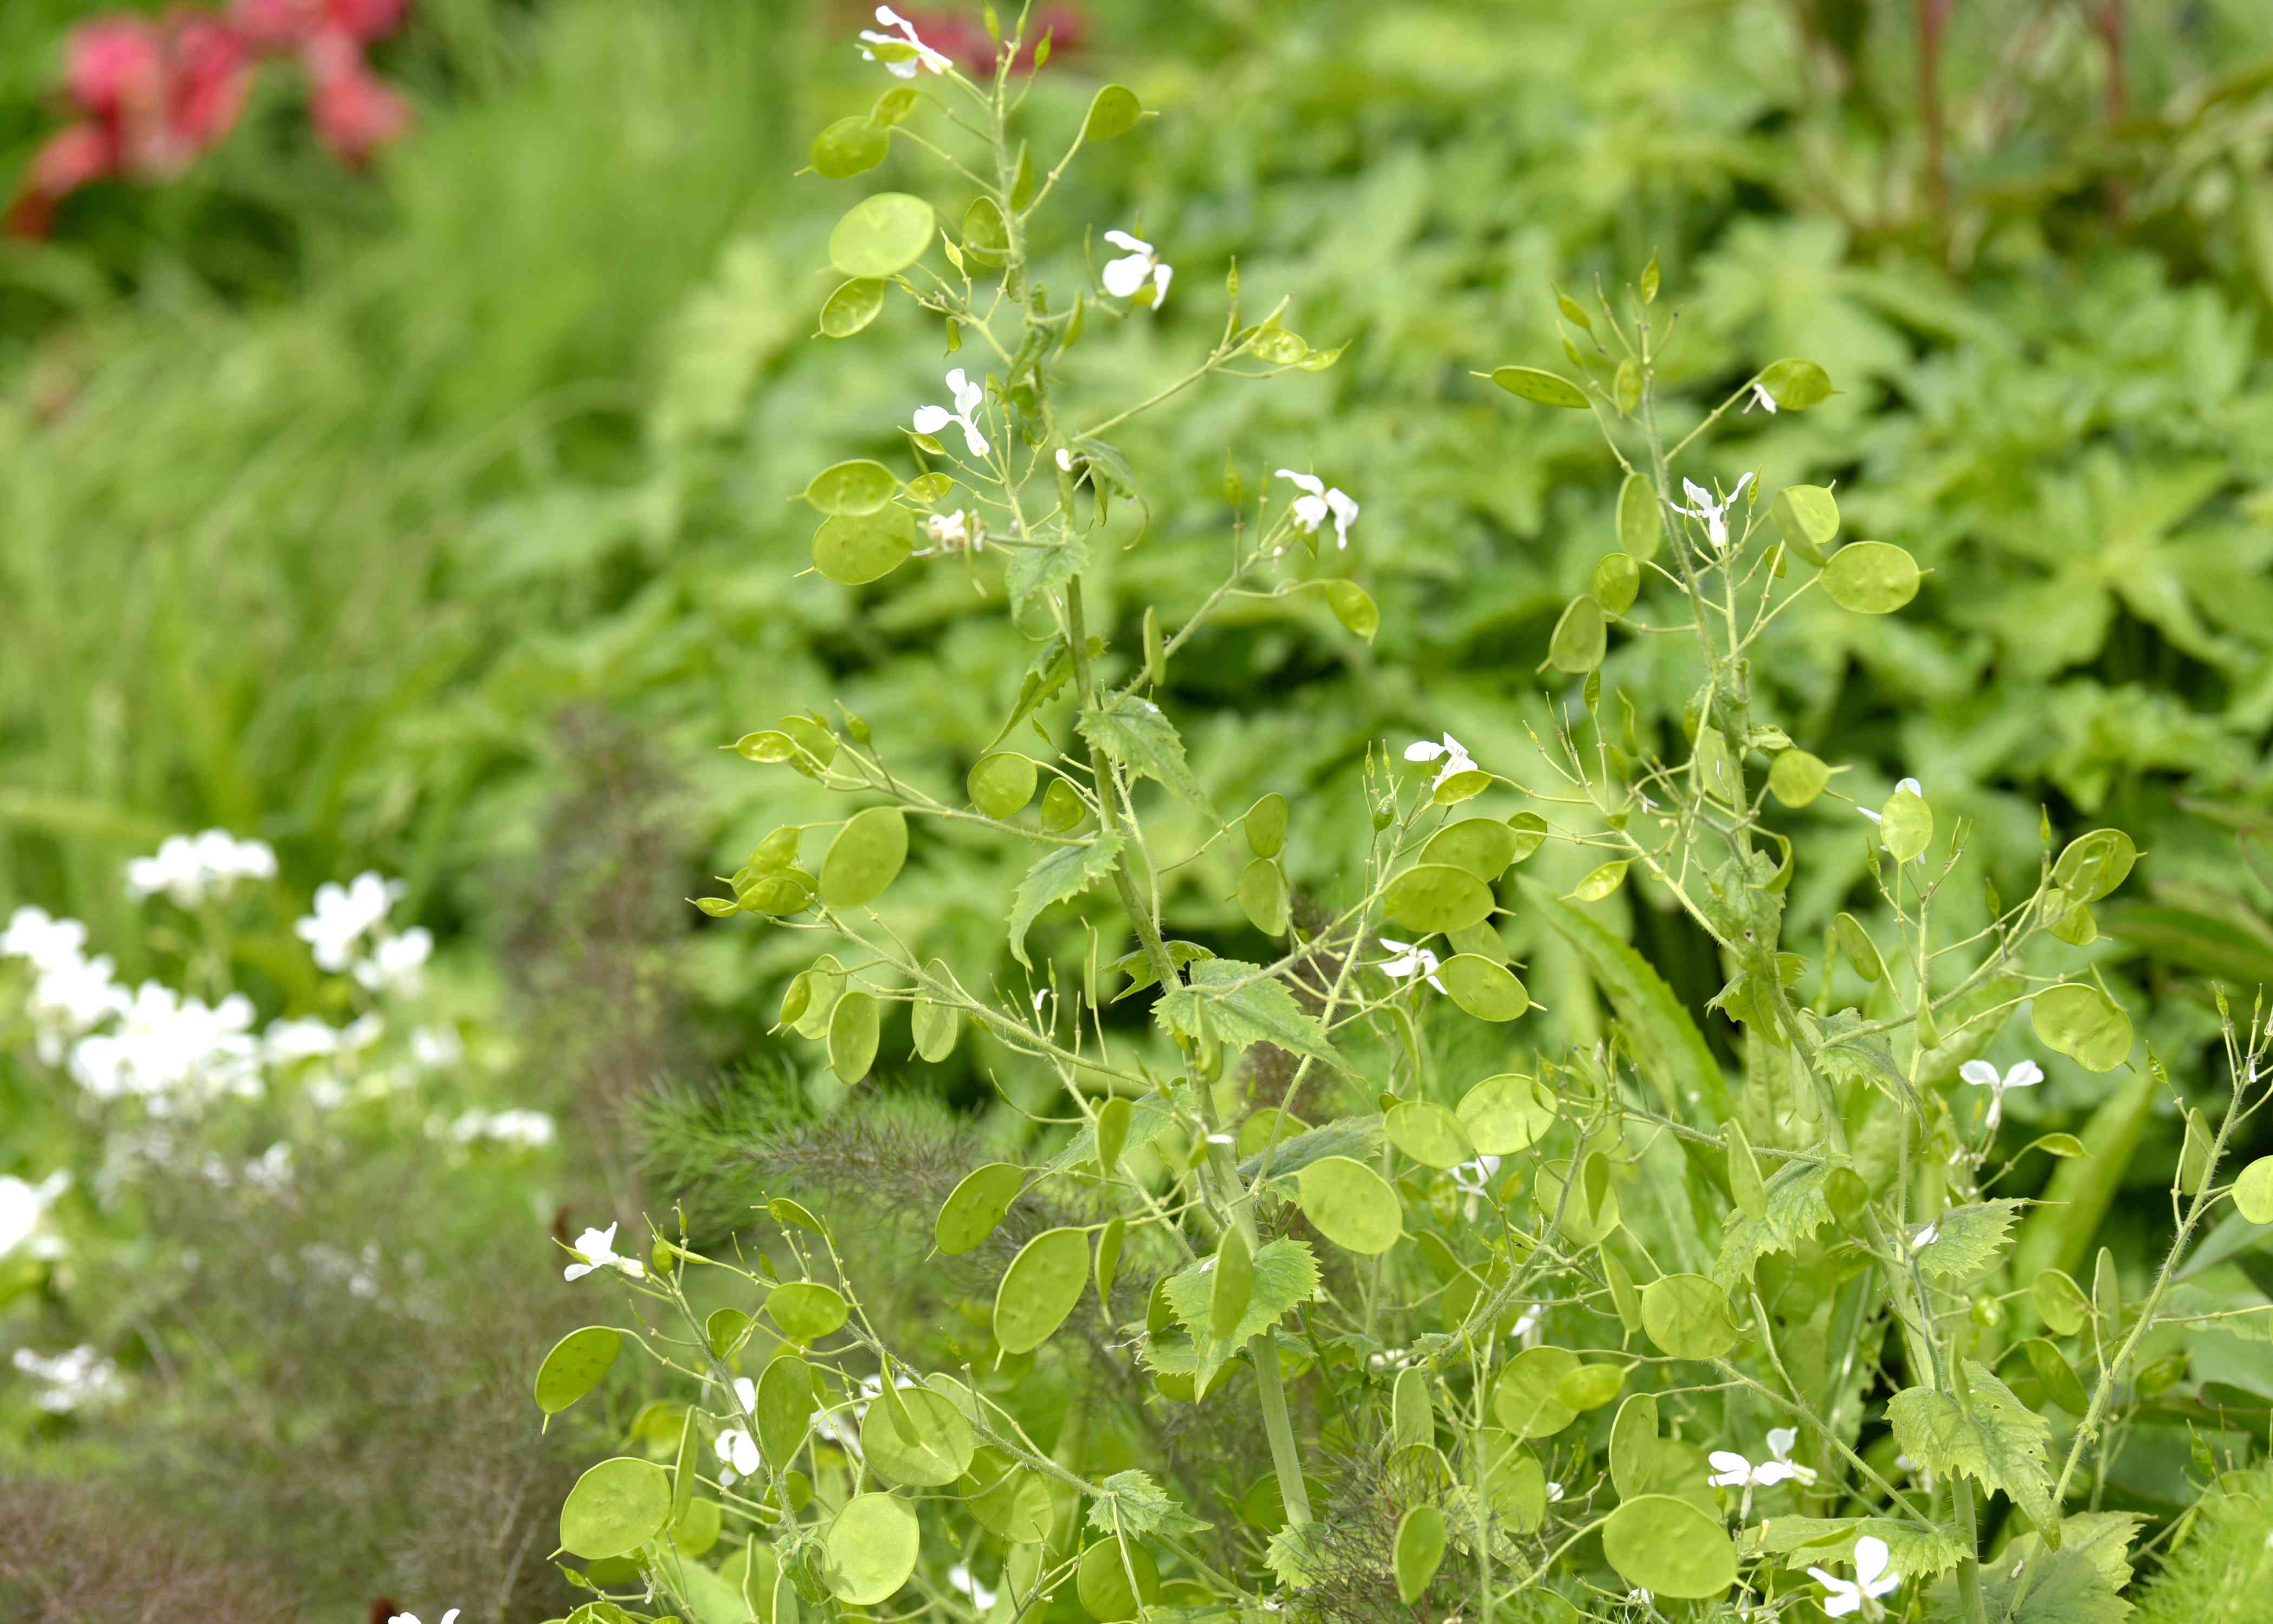 Lunaria plant with rounded green leaves on tall stems with small white flowers